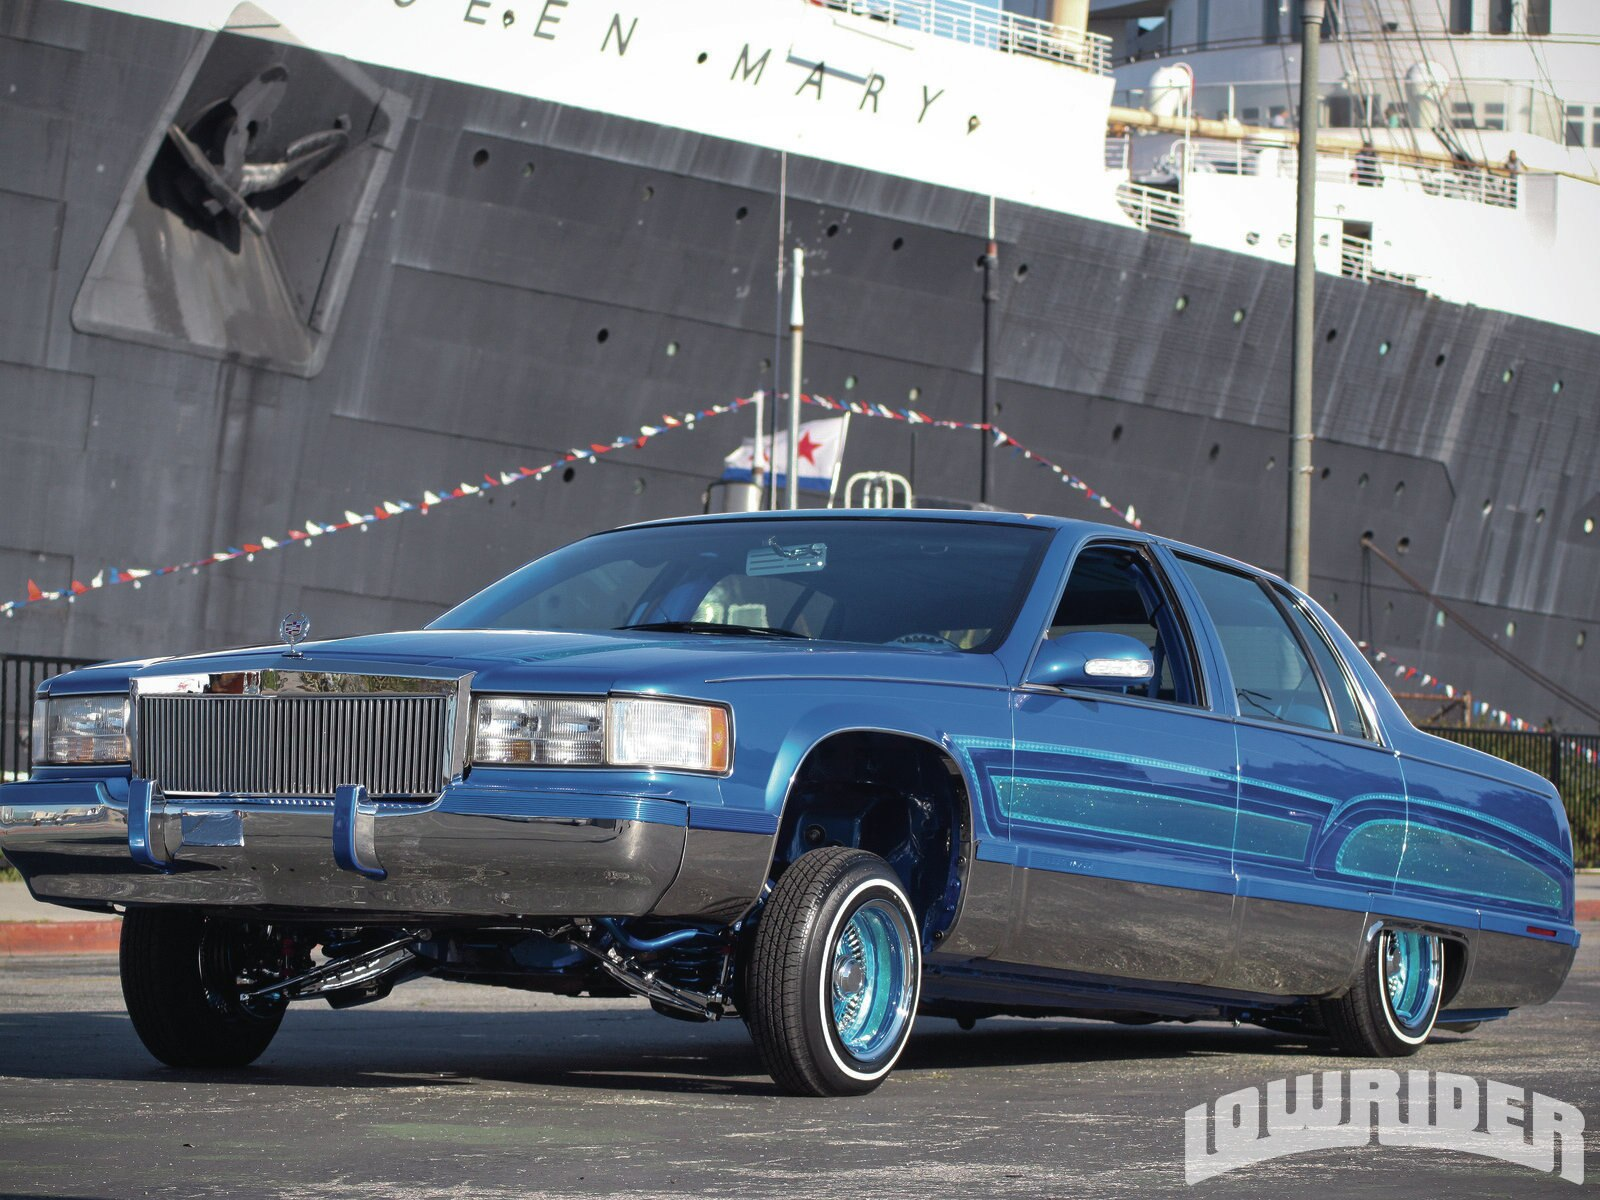 lrmp-1107-01-z-1996-cadillac-fleetwood-brougham-front-view1